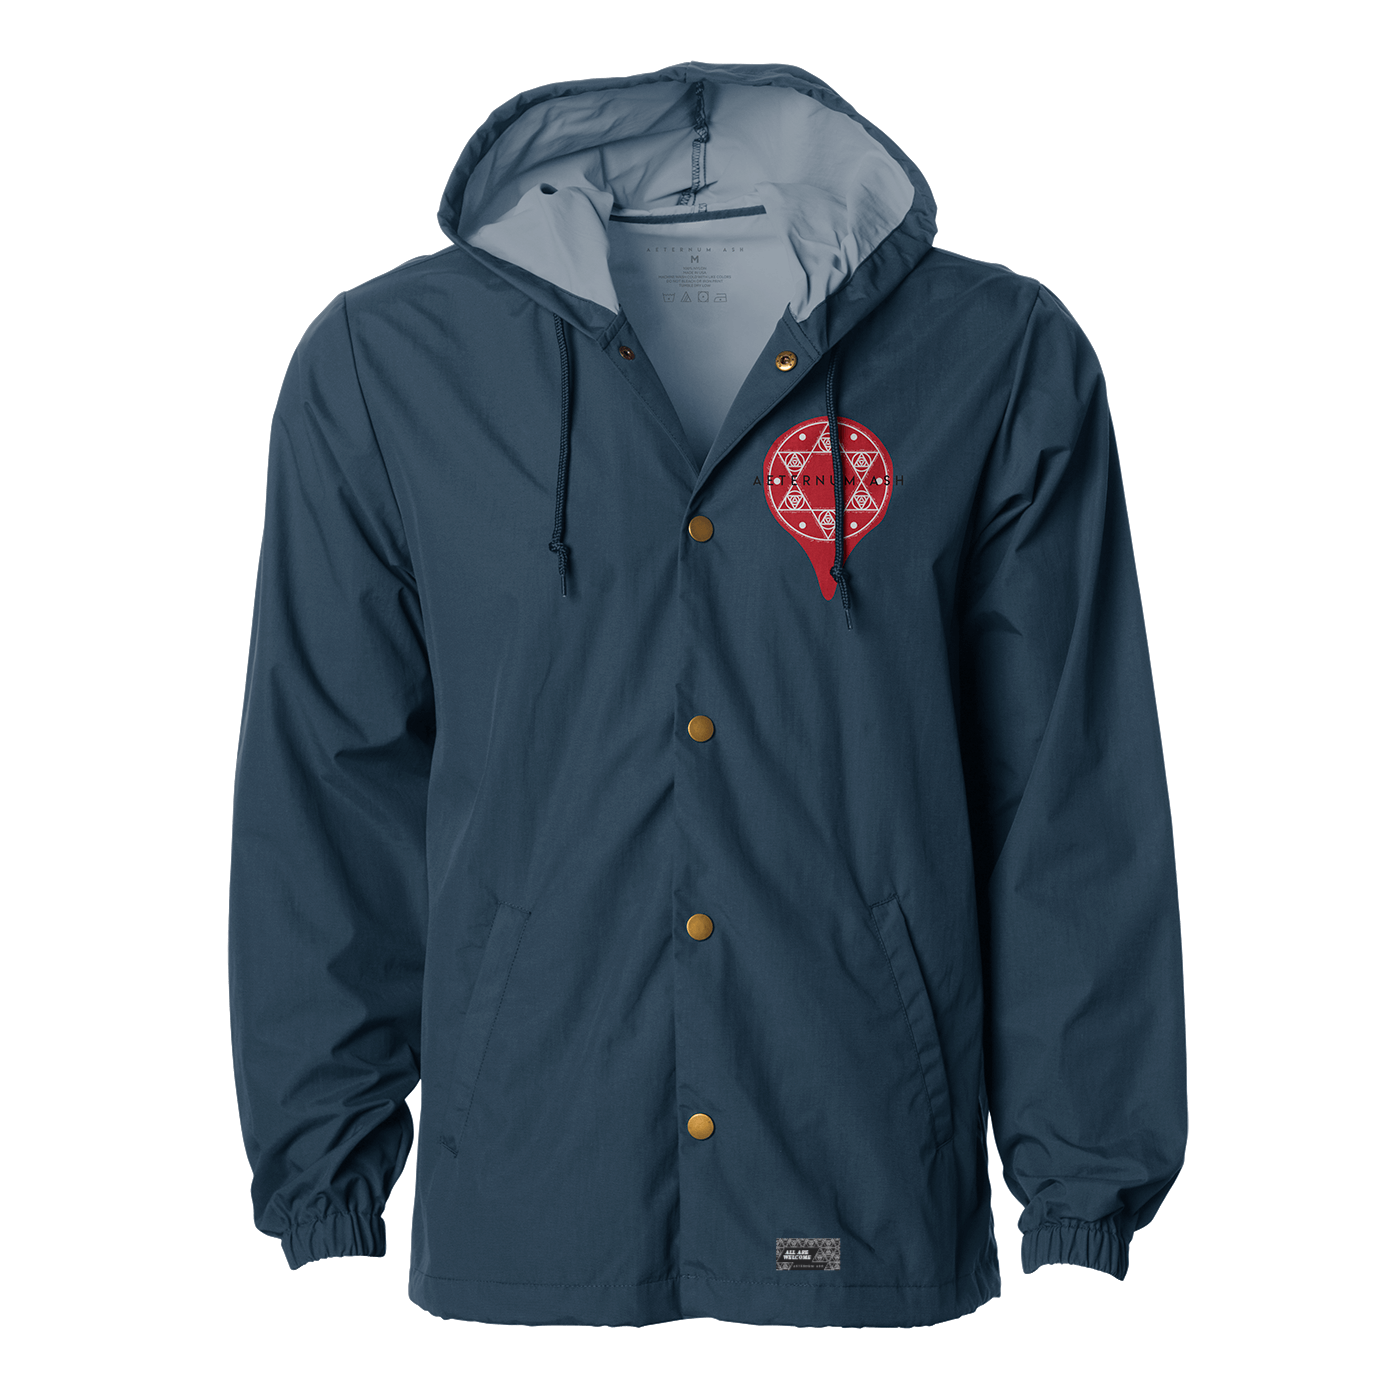 aeternum ash seal of solomon jacket navy